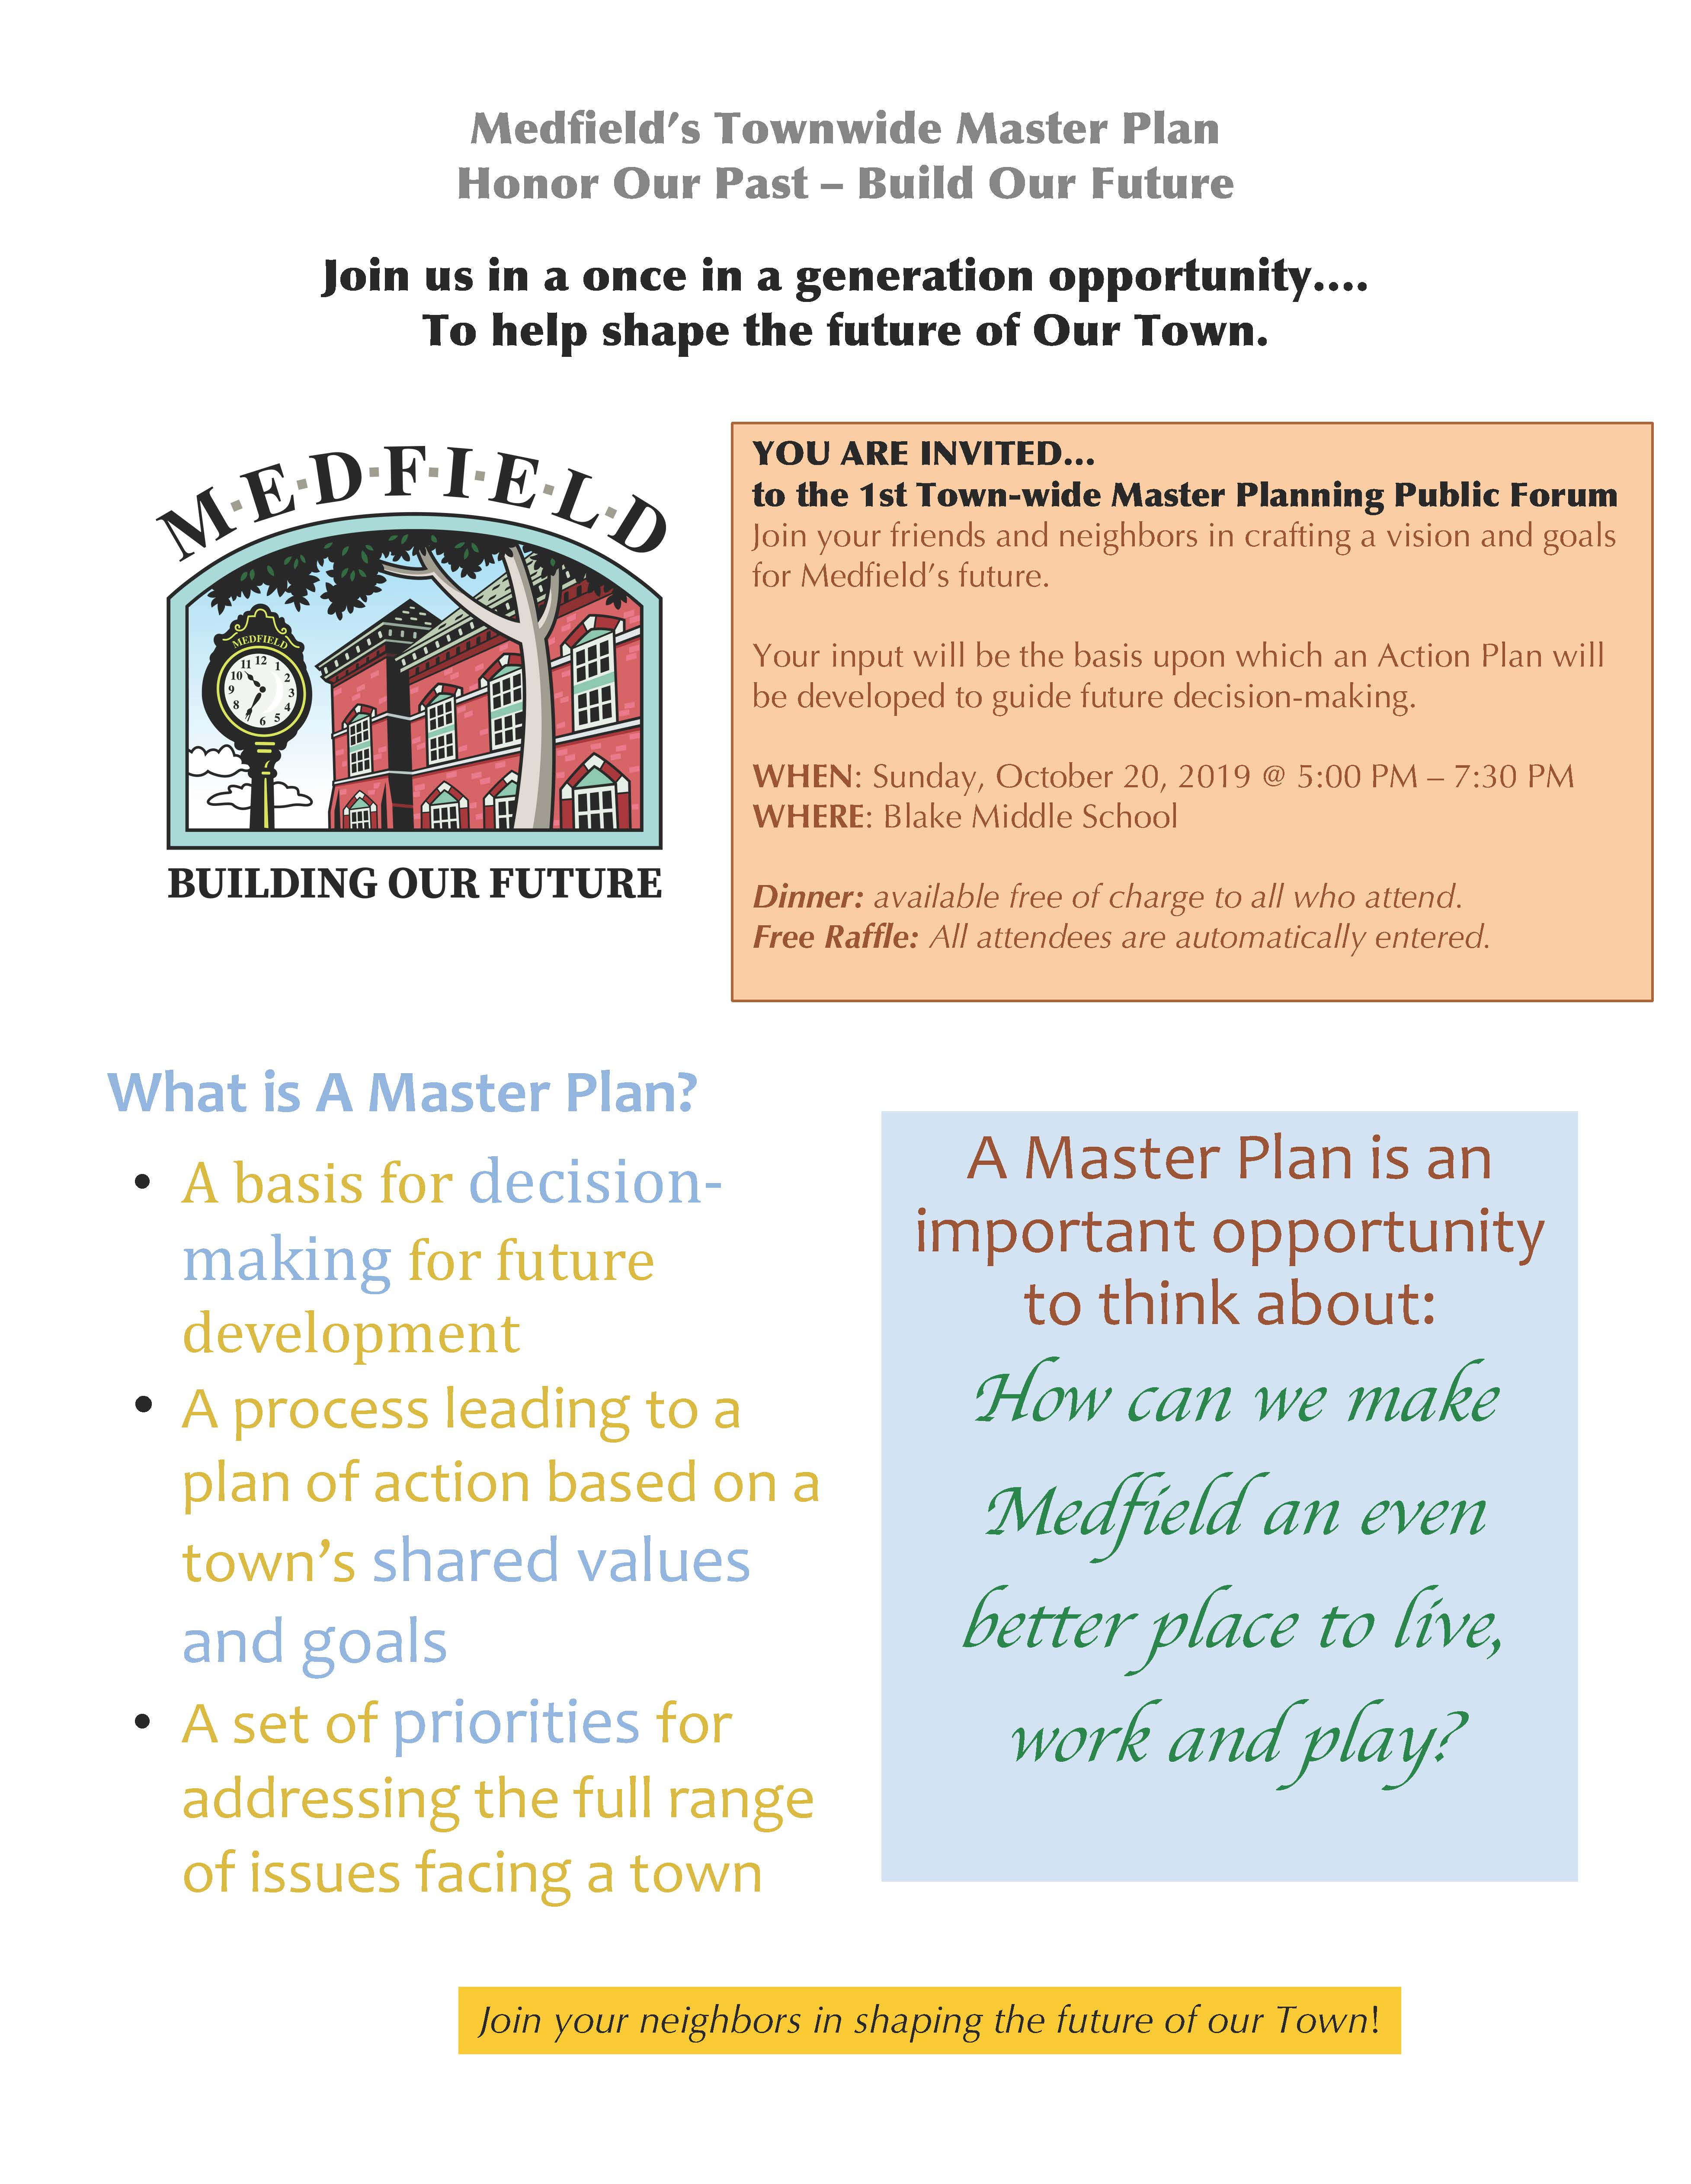 "Medfield's Townwide Master Plan Honor Our Past – Build Our Future Join us in a once in a generation opportunity…. To help shape the future of Our Town. YOU ARE INVITED… to the 1st Town-wide Master Planning Public Forum Join your friends and neighbors in crafting a vision and goals for Medfield's future. Your input will be the basis upon which an Action Plan will be developed to guide future decision-making. WHEN: Sunday, October 20, 2019 @ 5:00 PM – 7:30 PM WHERE: Blake Middle School Dinner: available free of charge to all who attend. Free Raffle: All attendees are automatically entered. A Master Plan is an important opportunity to think about: How can we make Medfield an even better place to live, work and play? Join your neighbors in shaping the future of our Town! What is A Master Plan? • A basis for decisionmaking for future development • A process leading to a plan of action based on a town's shared values and goals • A set of priorities for addressing the full range of issues facing a town Medfield's Townwide Master Plan Honor Our Past – Build Our Future How can a master plan help increase a municipality's financial efficiency? • Identify priorities • Identify potential funding opportunities • Master Plan makes municipality eligible for grants • Identify low-hanging fruit • Recommend public/private partnerships where relevant • Master plan process can lead to partnerships and resource sharing • Identifies opportunities for regionalization of services and/or facilities Why Plan? • Take stock, review objectives, direction and priorities • Examine resource allocation: existing and optimal • Last complete plan - 1997 • Be proactive and affect future decision making • Support eligibility for grant programs and public funds What to preserve? What to change? Concerns? Improvements? Ensure that Medfield's desirable features are preserved and challenges are addressed. ""But I like things the way they are… "" Doing nothing doesn't mean nothing will change. For more information please see: https://www.town.medfield.net/350/Townwide-Master-Planning-Committee"